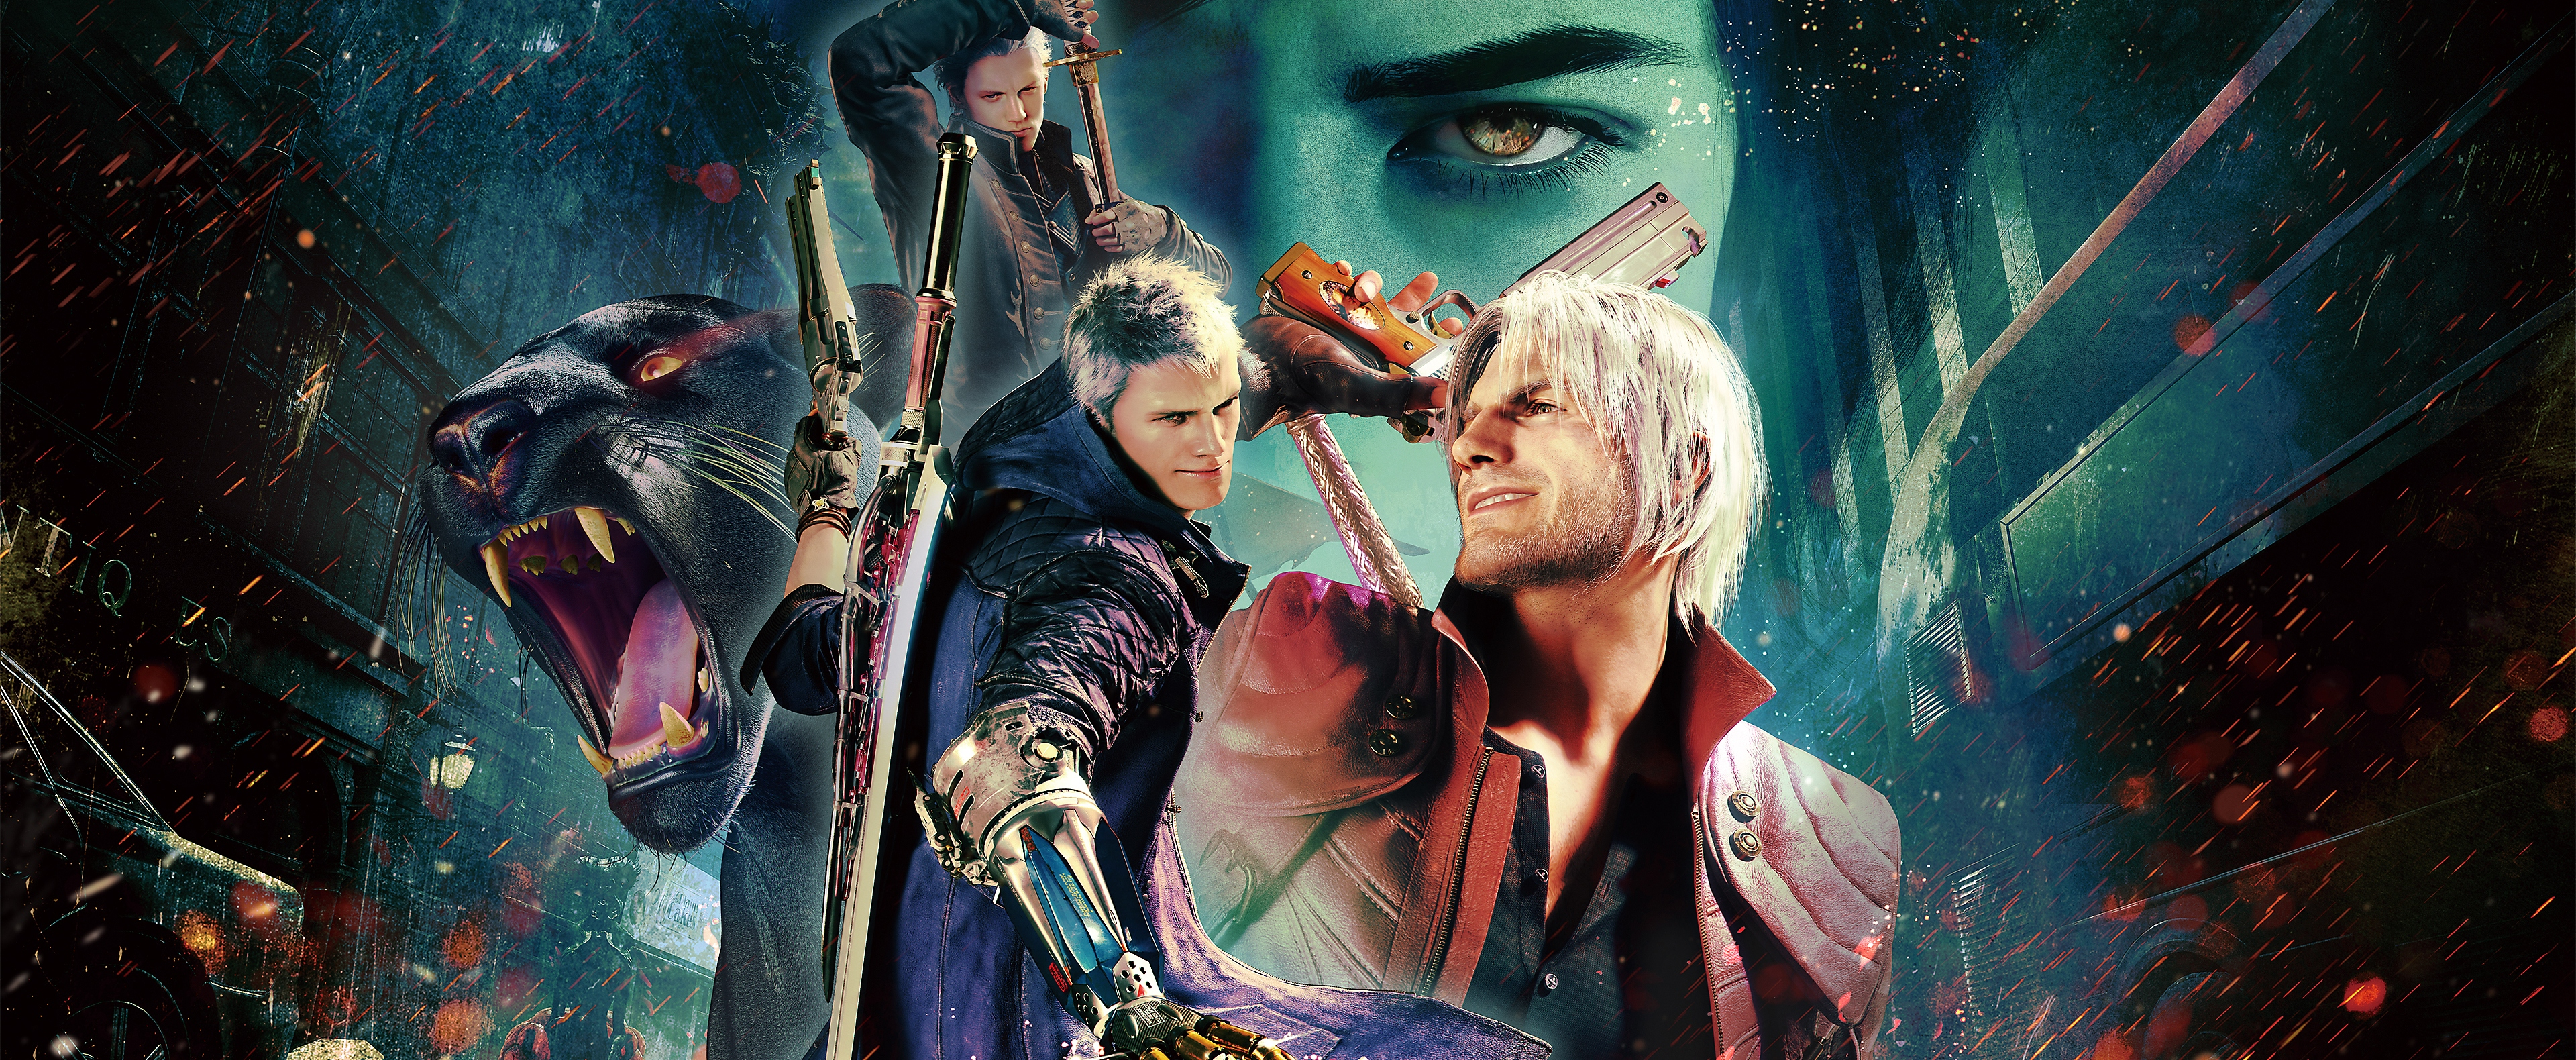 Devil May Cry 5: Special Edition - Hero Image